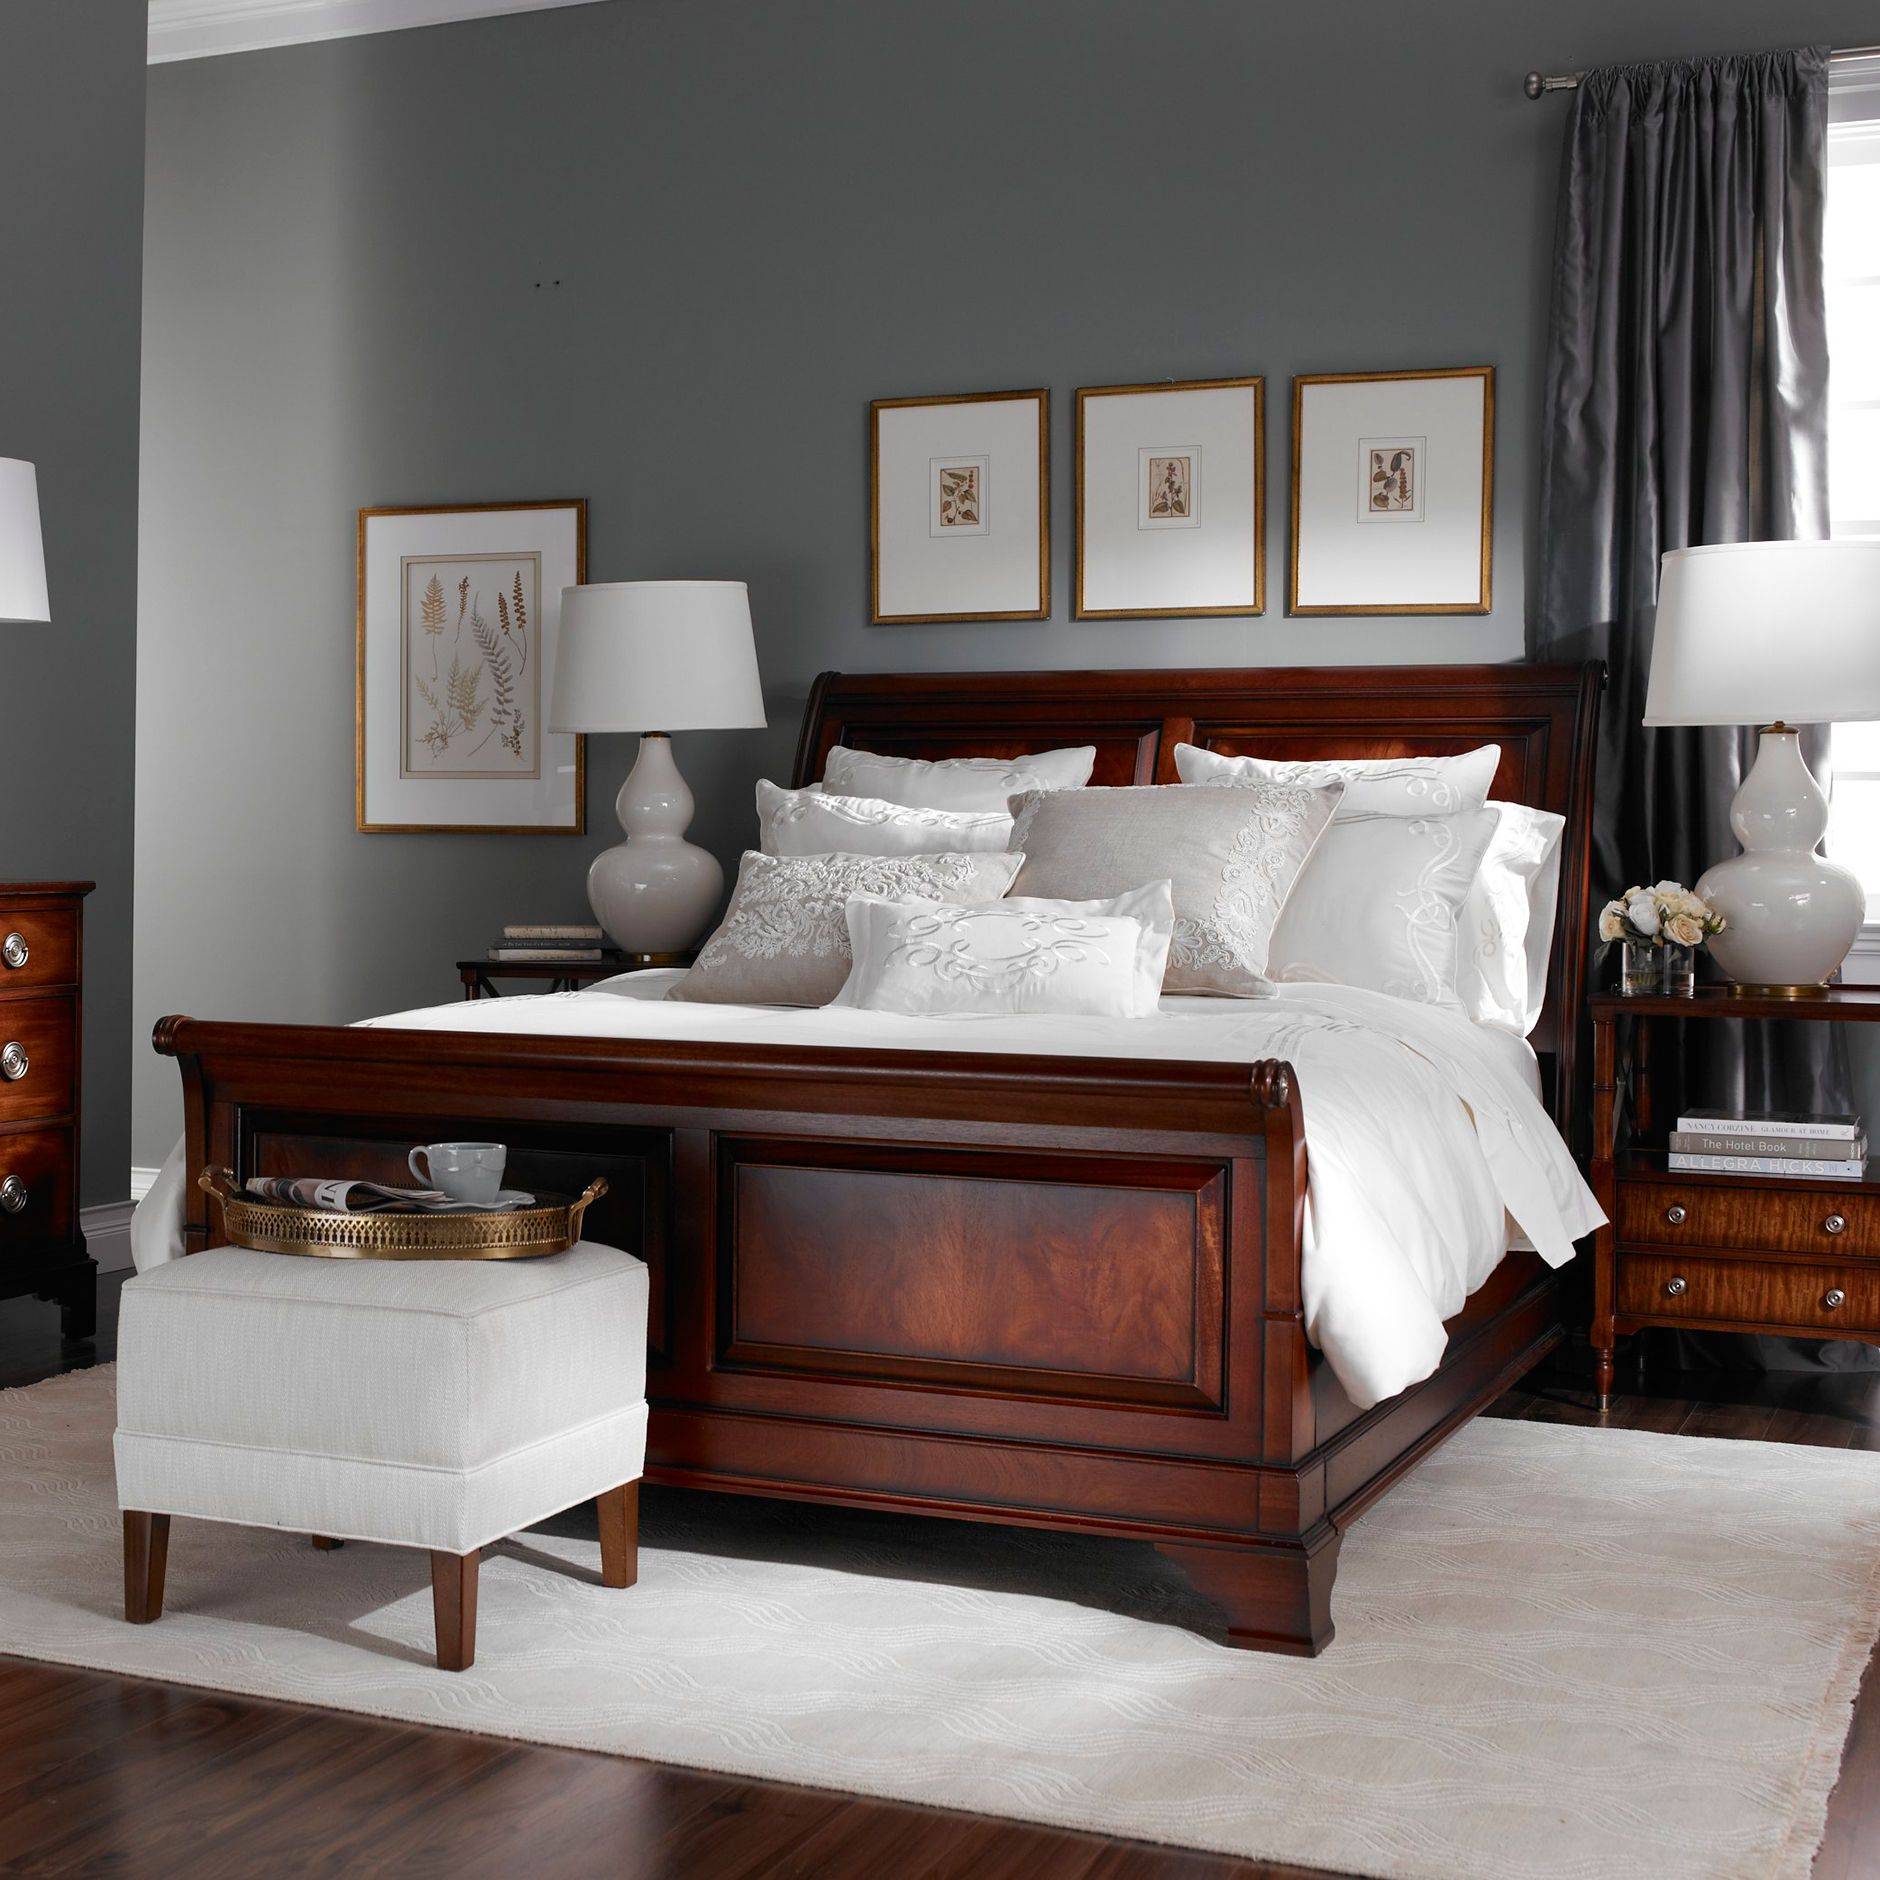 Somerset Bed   Ethan Allen US Dream Master Bedroom, Master Bedroom  Interior, Gray Bedroom